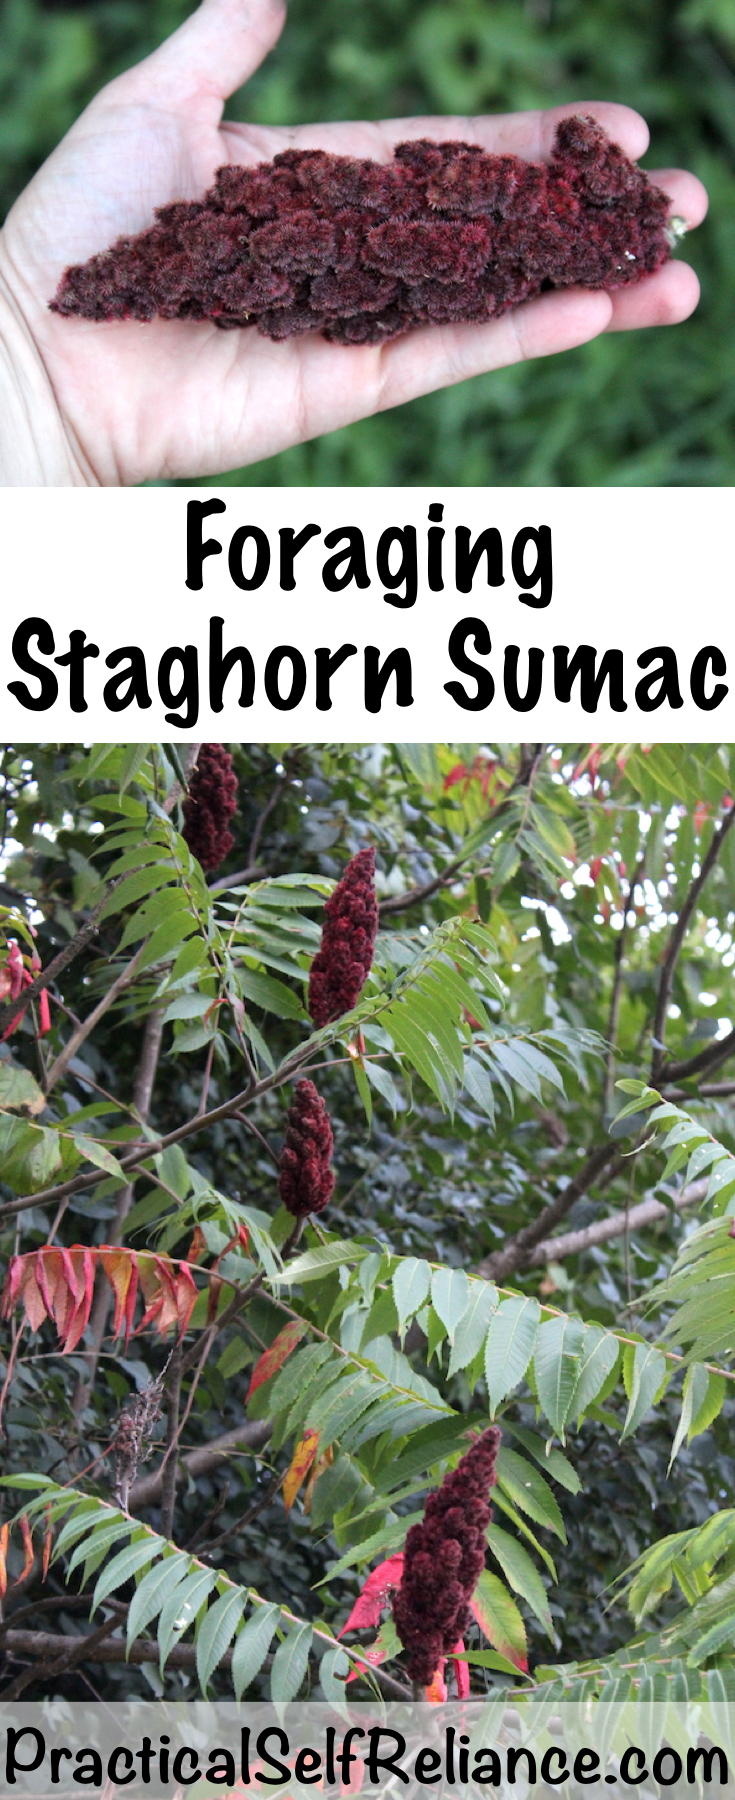 Foraging Staghorn Sumac ~ A natural source of Vitamin C.  Sumac is easy to forage anywhere on the east coast of the united states.  It's both easy to find and identify. #foraging #wildfood #wildcrafting #survival #bushcraft #herbalism #sumac #uses #identification #harvesting